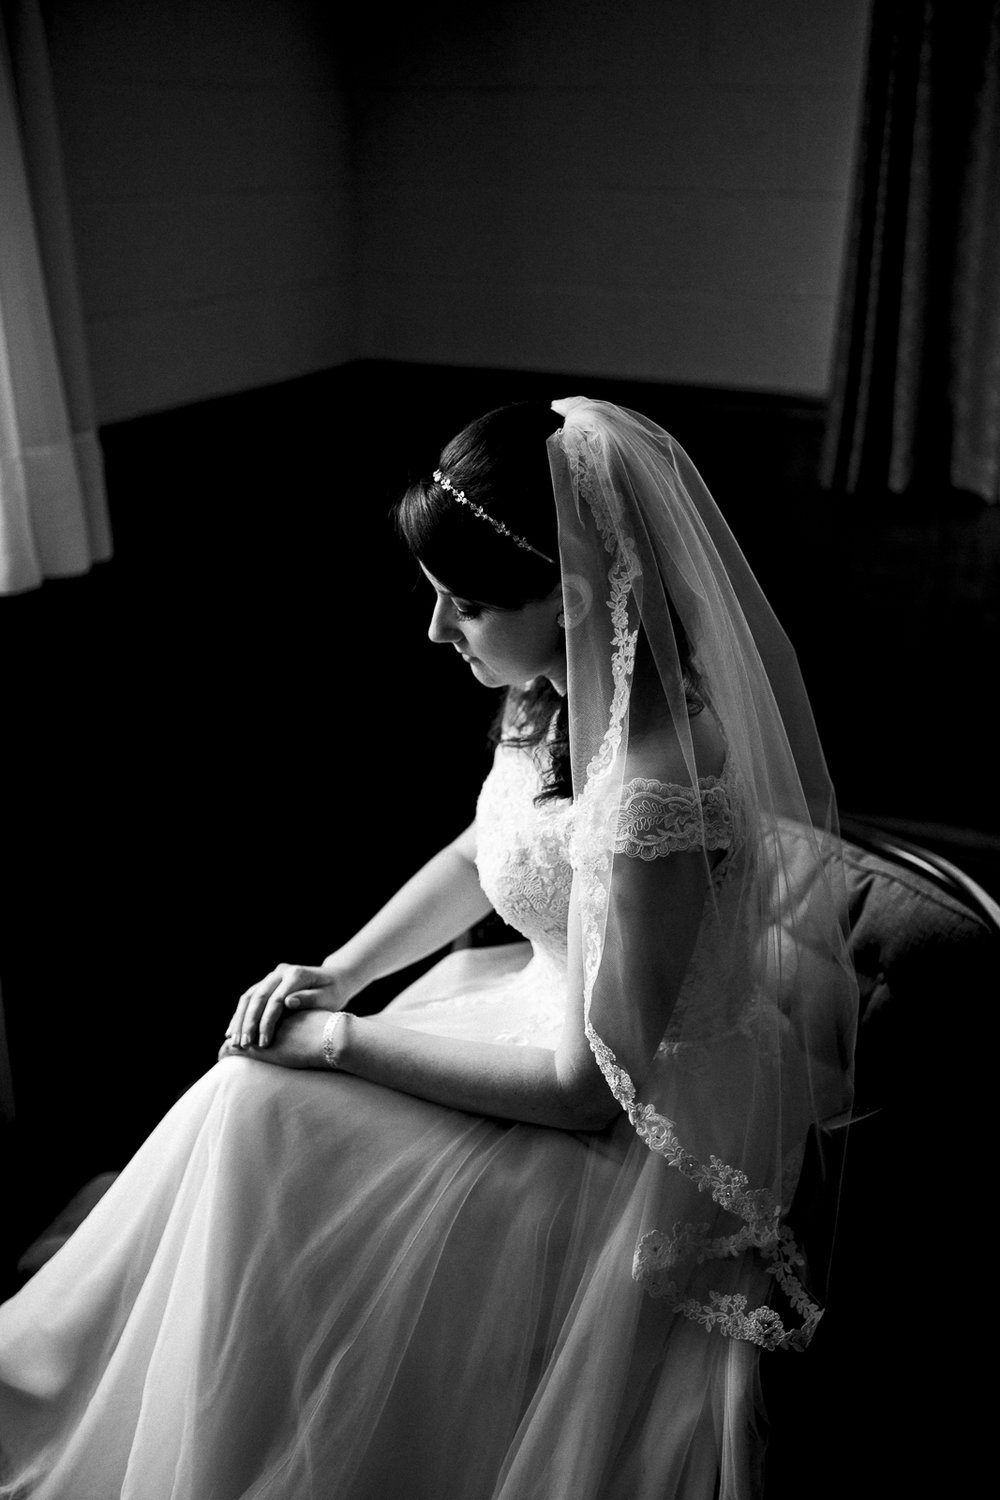 Beautiful bride on wedding day.